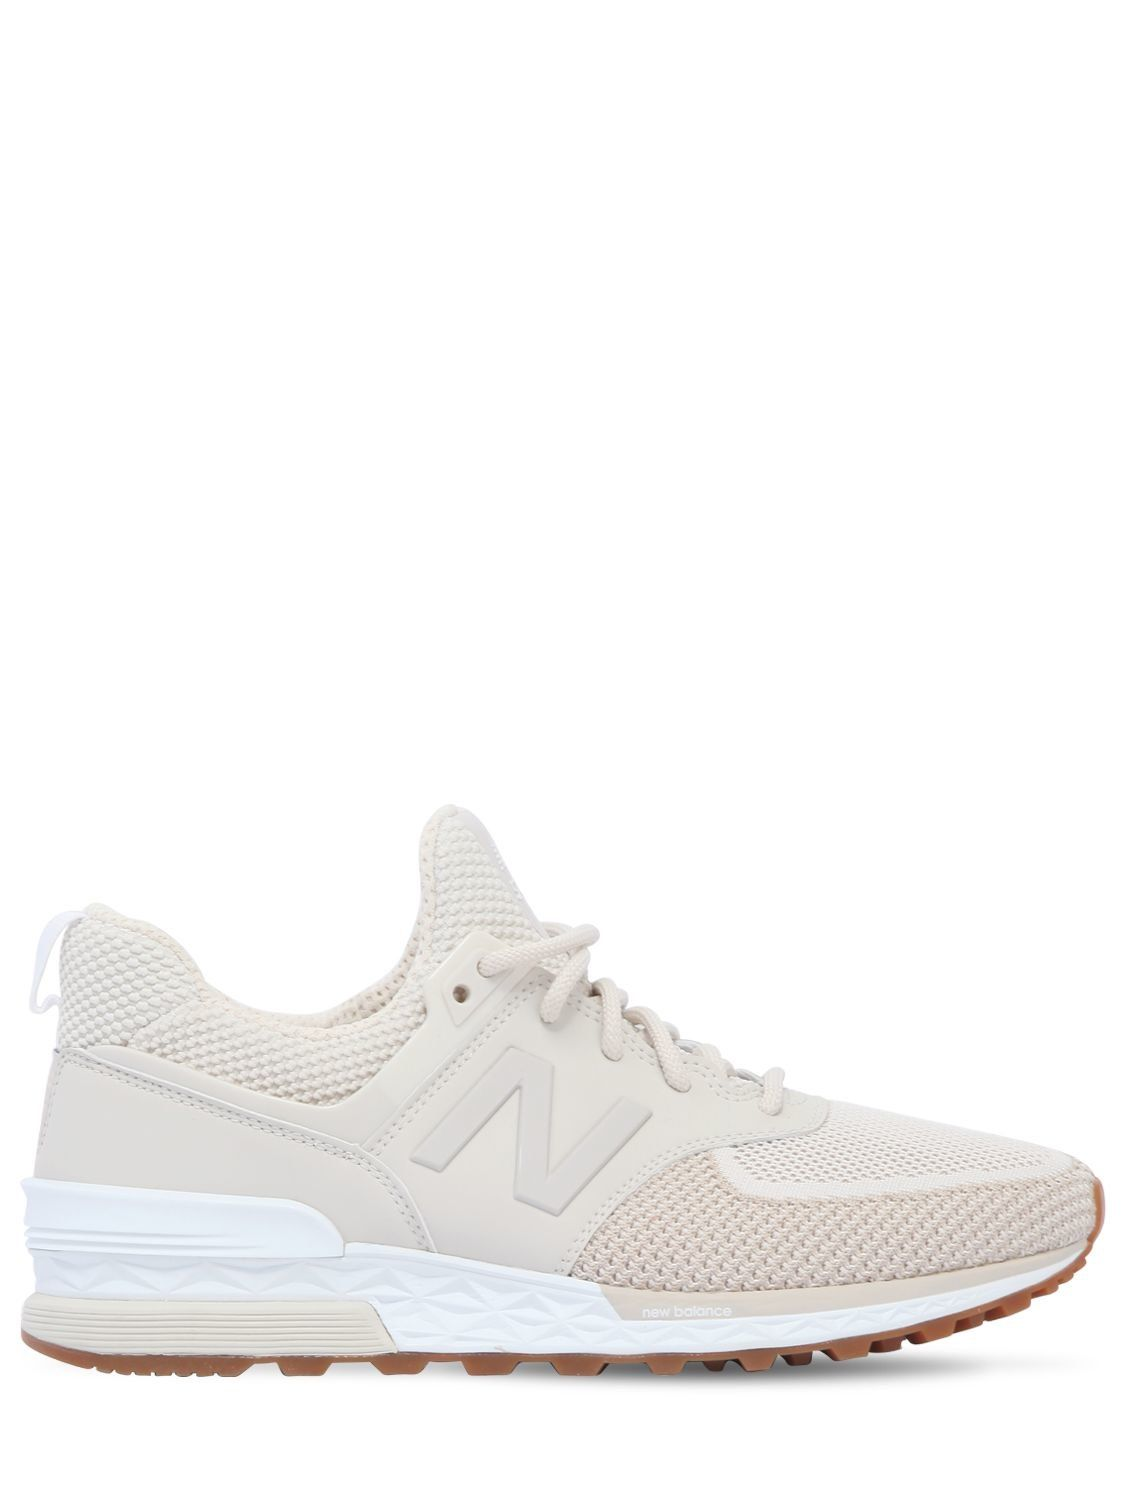 574 Sport Mesh Mid Top Sneakers In Off White Mid top